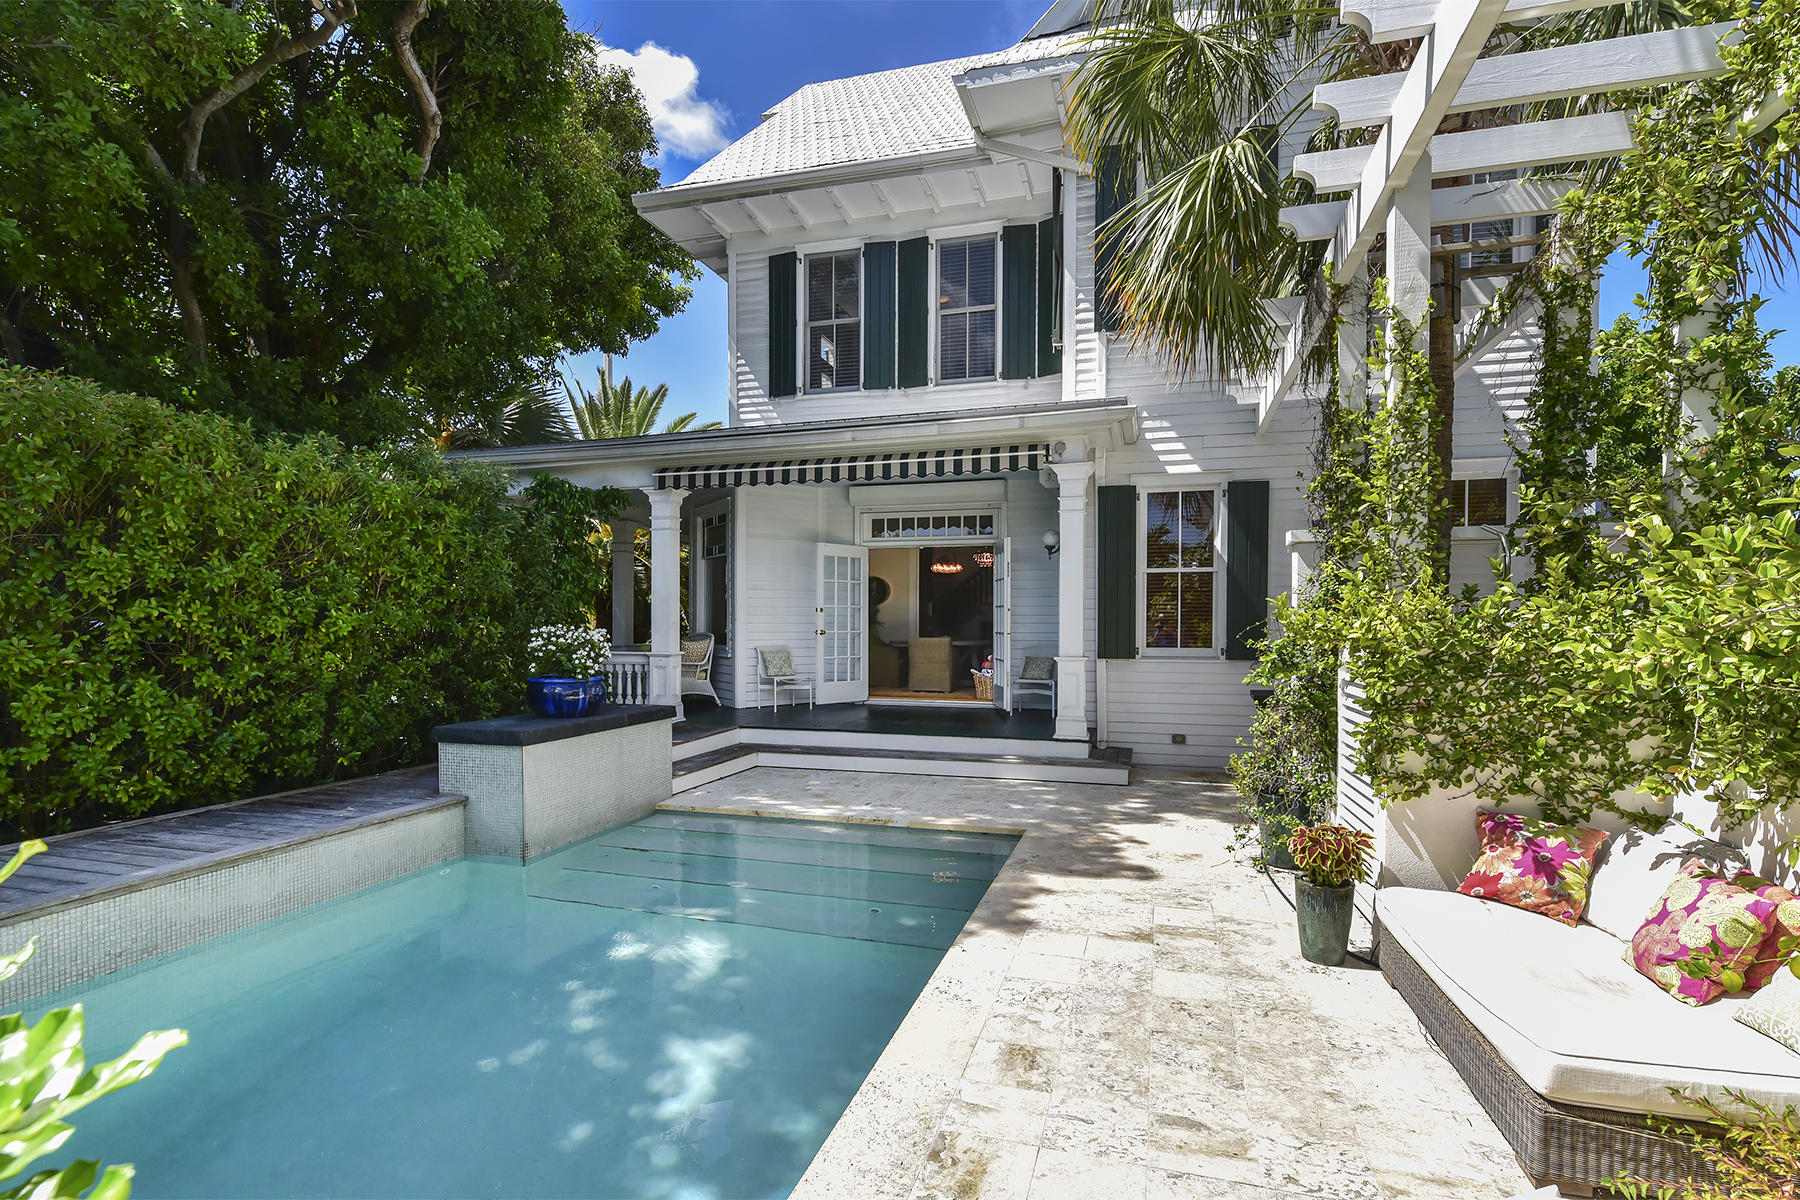 Single Family Homes for Sale at 727 Eaton Street, Key West, FL 727 Eaton Street Key West, Florida 33040 United States